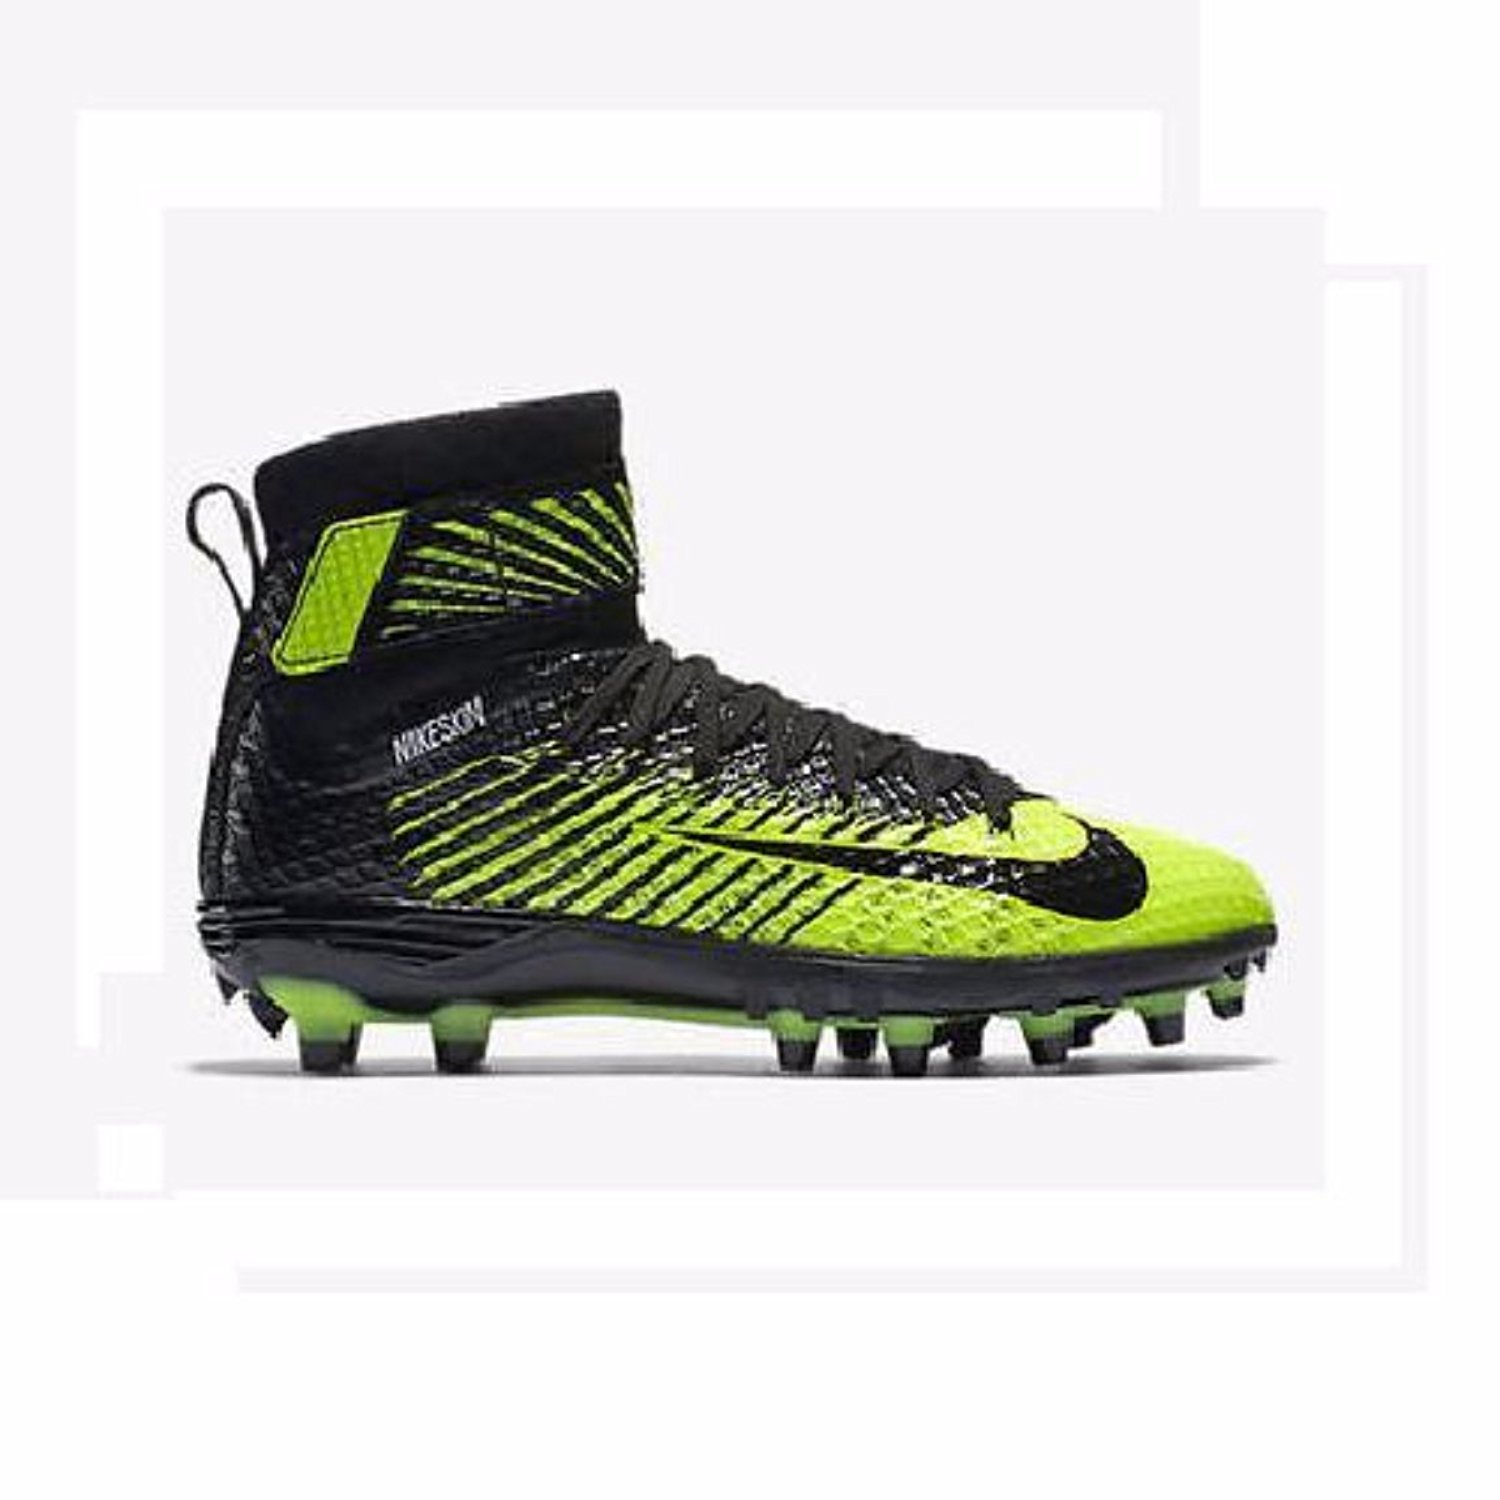 543f95e93 Get Quotations · Nike Vapor Pro Low TD Men s Molded Football Cleats